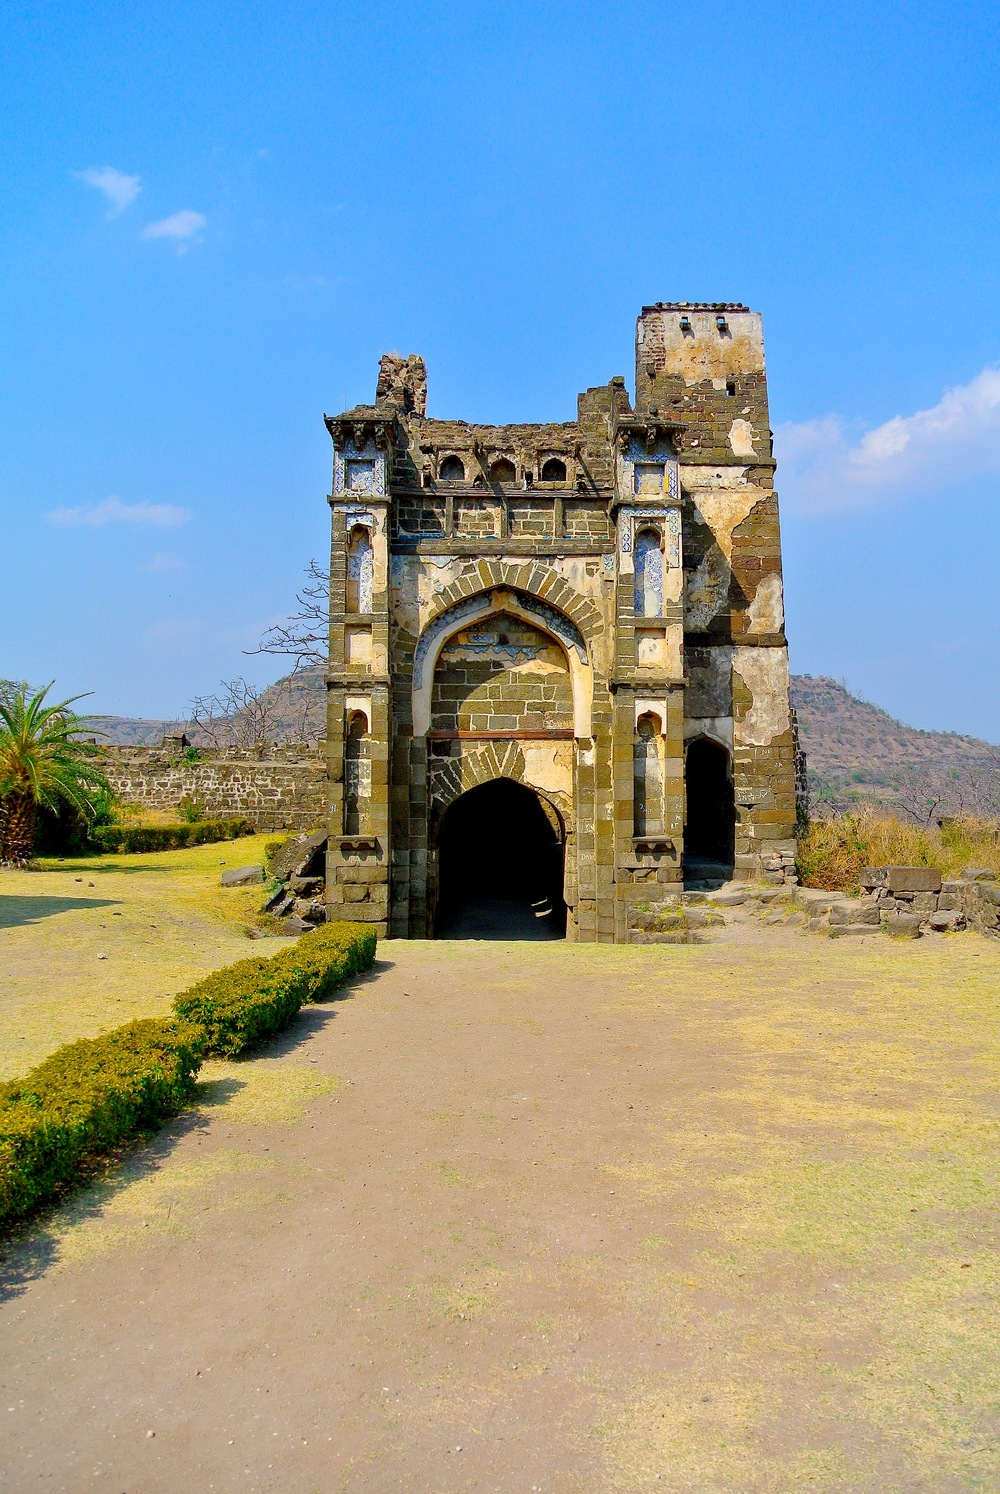 The Chinese Palace, or Chini Mahal, at Daulatabad in India